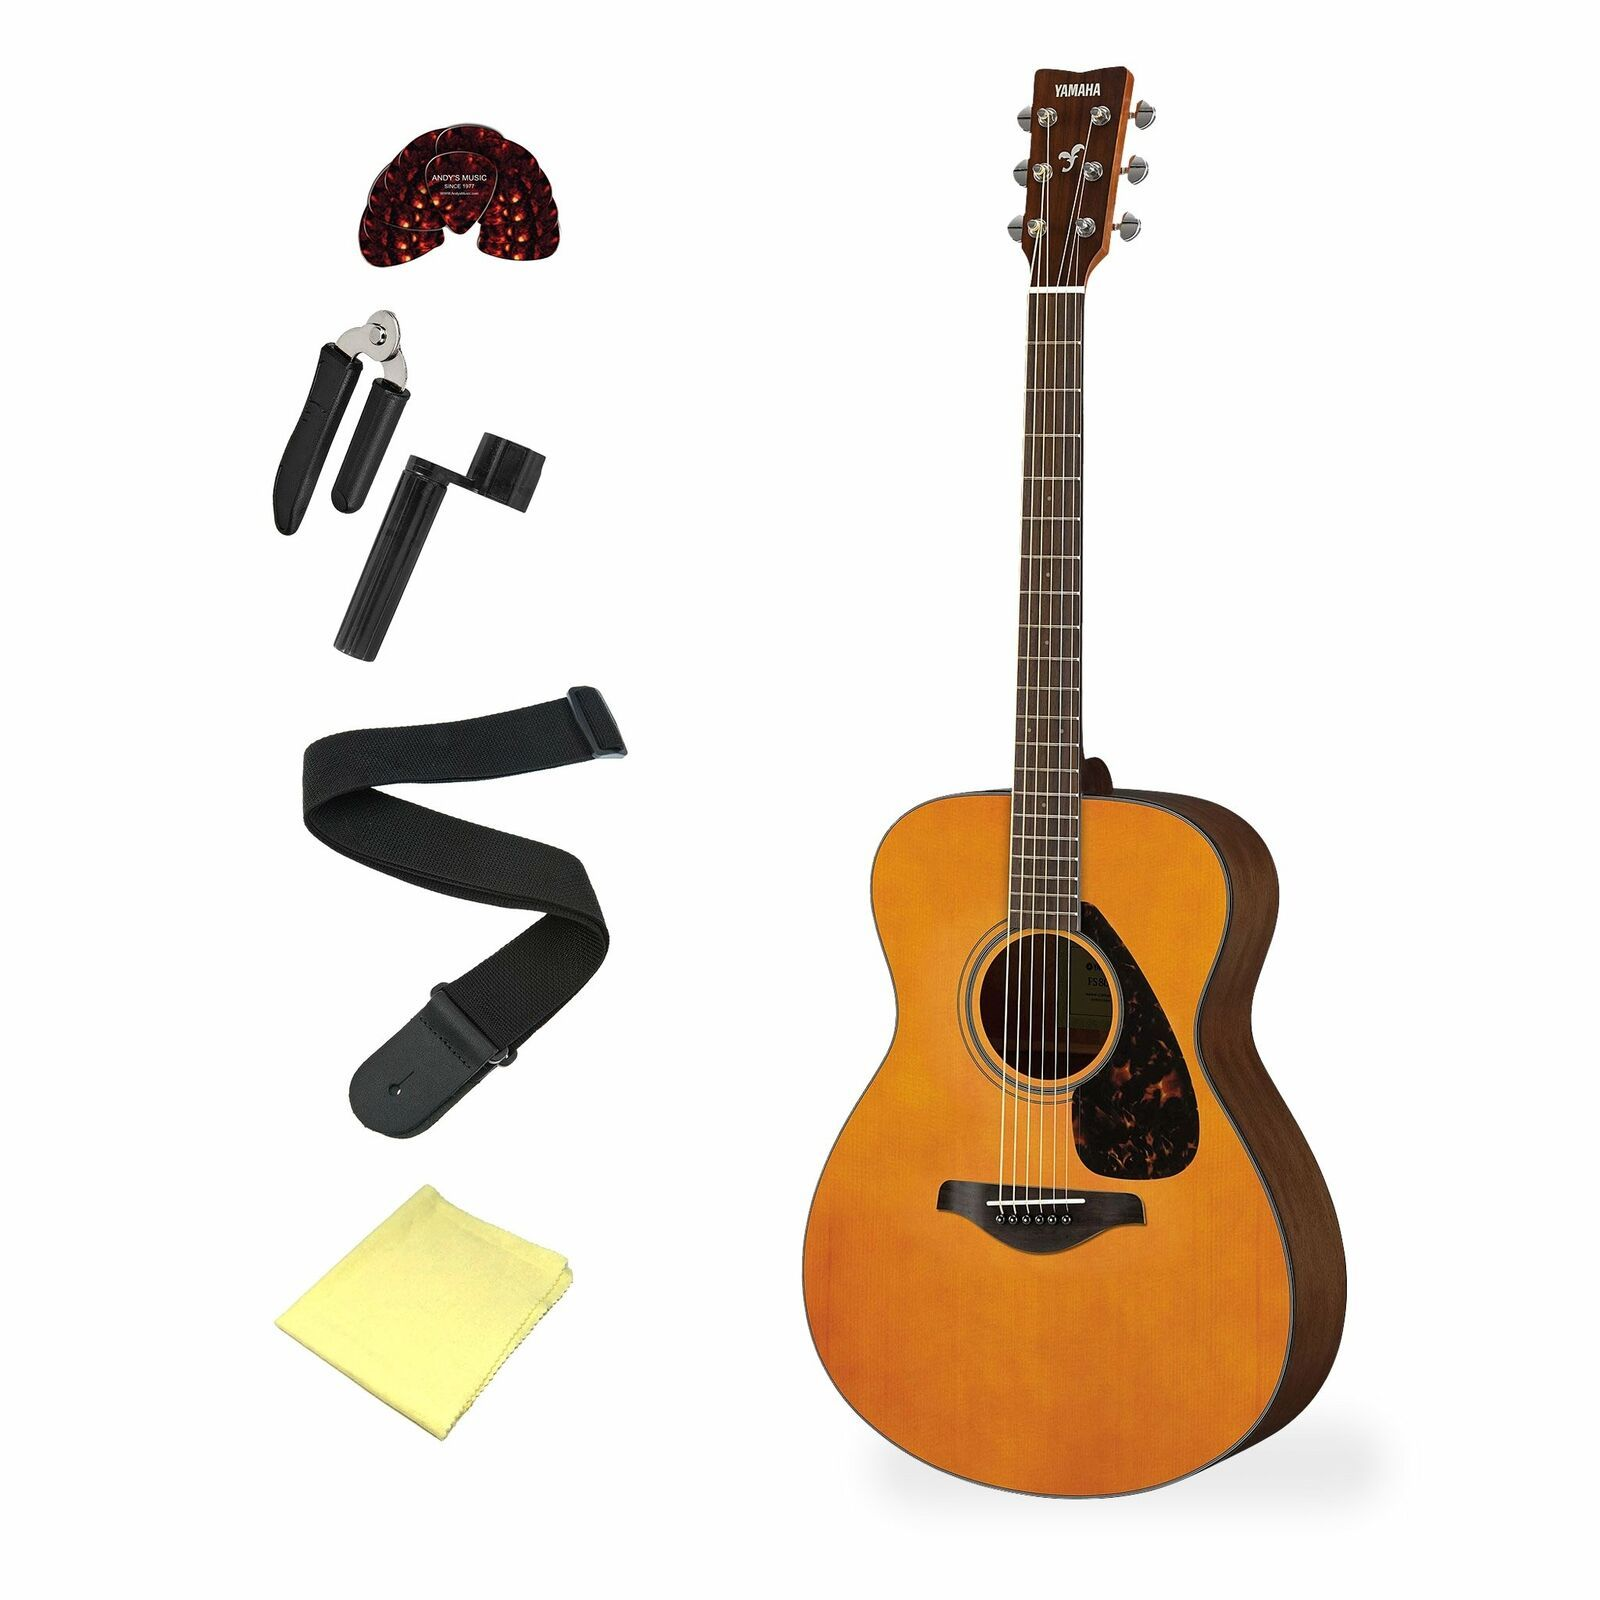 Details About Yamaha Fs800t Tinted Acoustic Guitar Select Your Bundle In 2020 With Images Acoustic Guitar Small Guitar Guitar